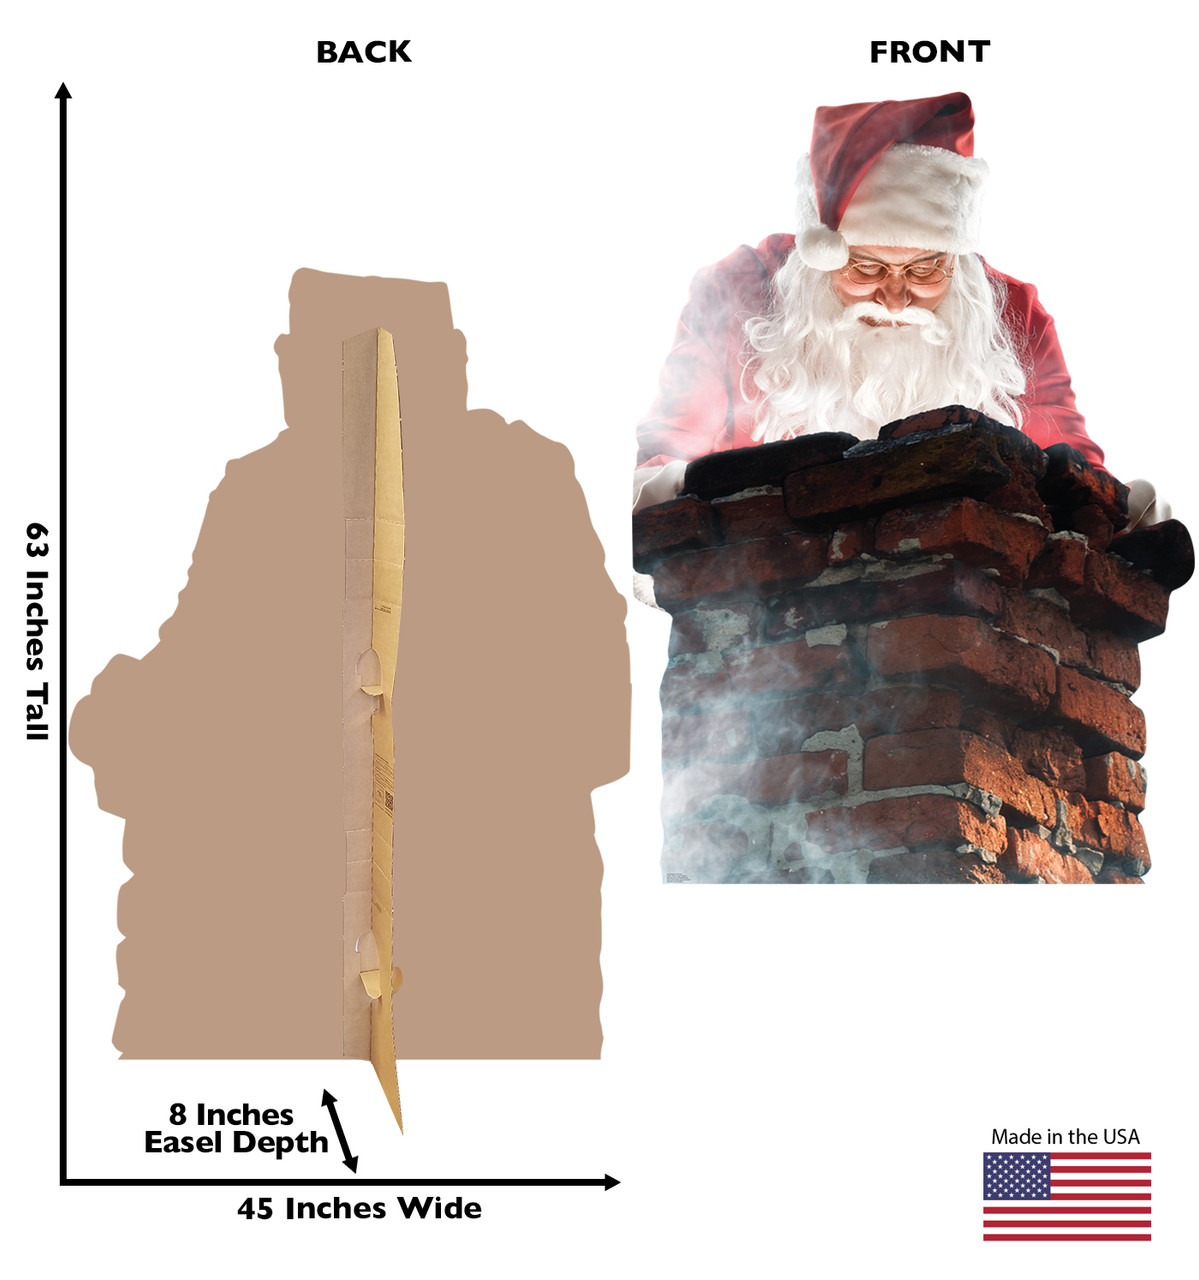 Life-size cardboard standee of Santa in a Chimney with front and back dimensions.